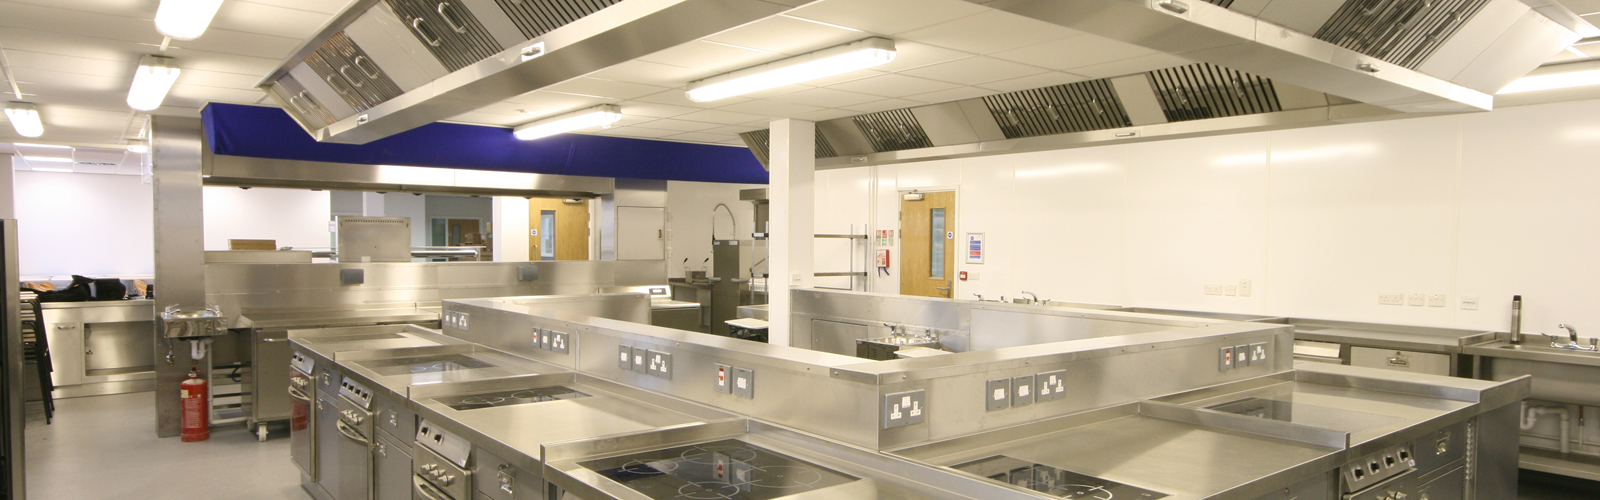 College Training Commercial Kitchen